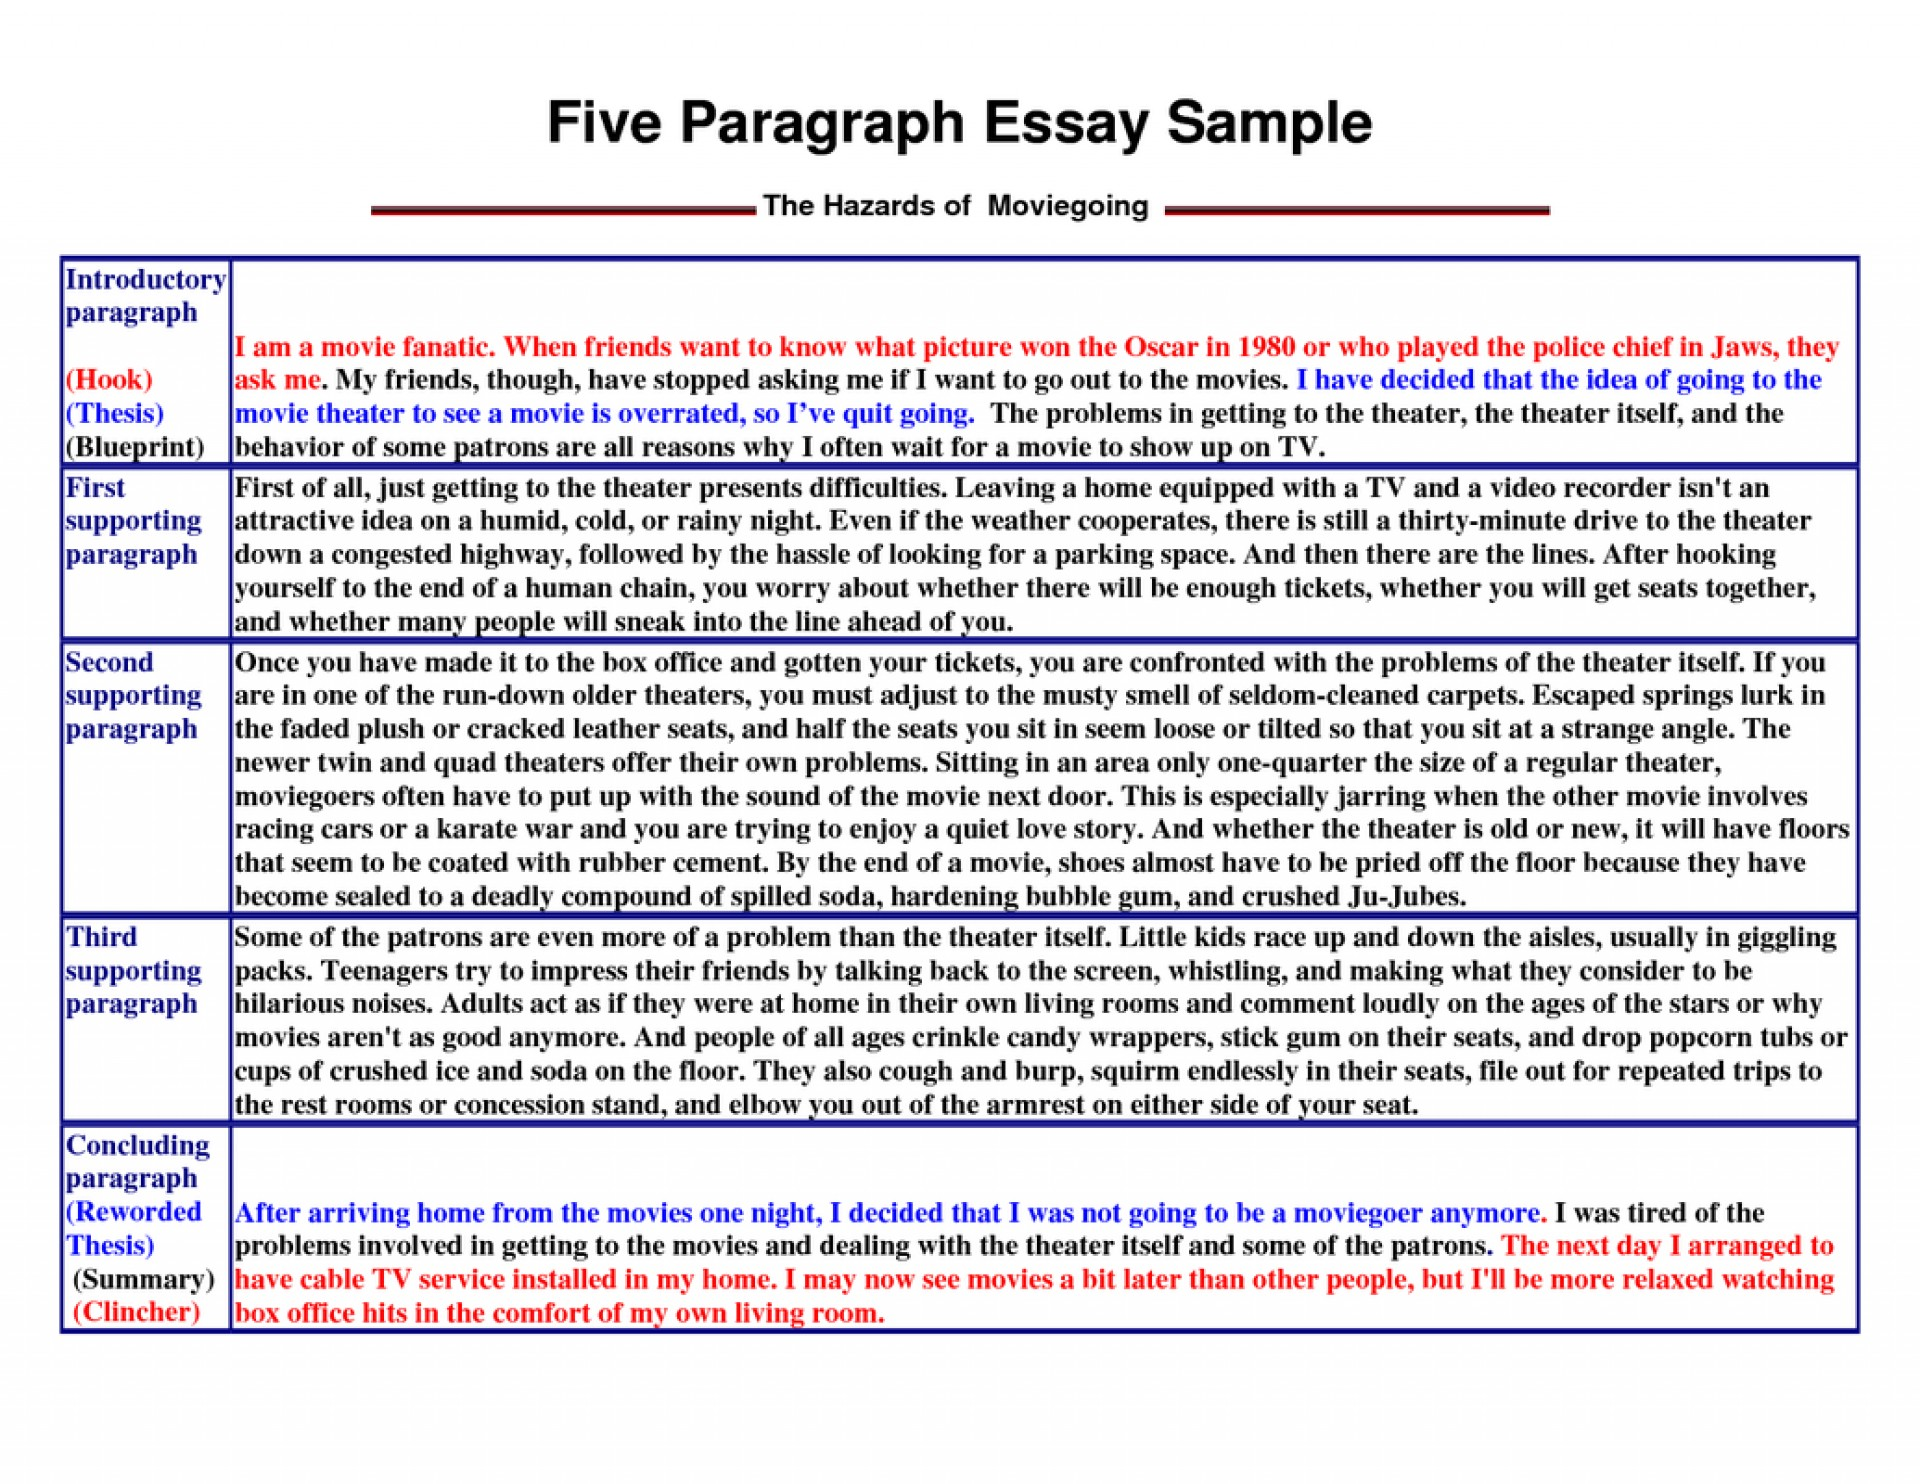 014 Opening Statements For Essays 7897635 Orig Essay Unusual Starting Lines General Statement Examples 1920